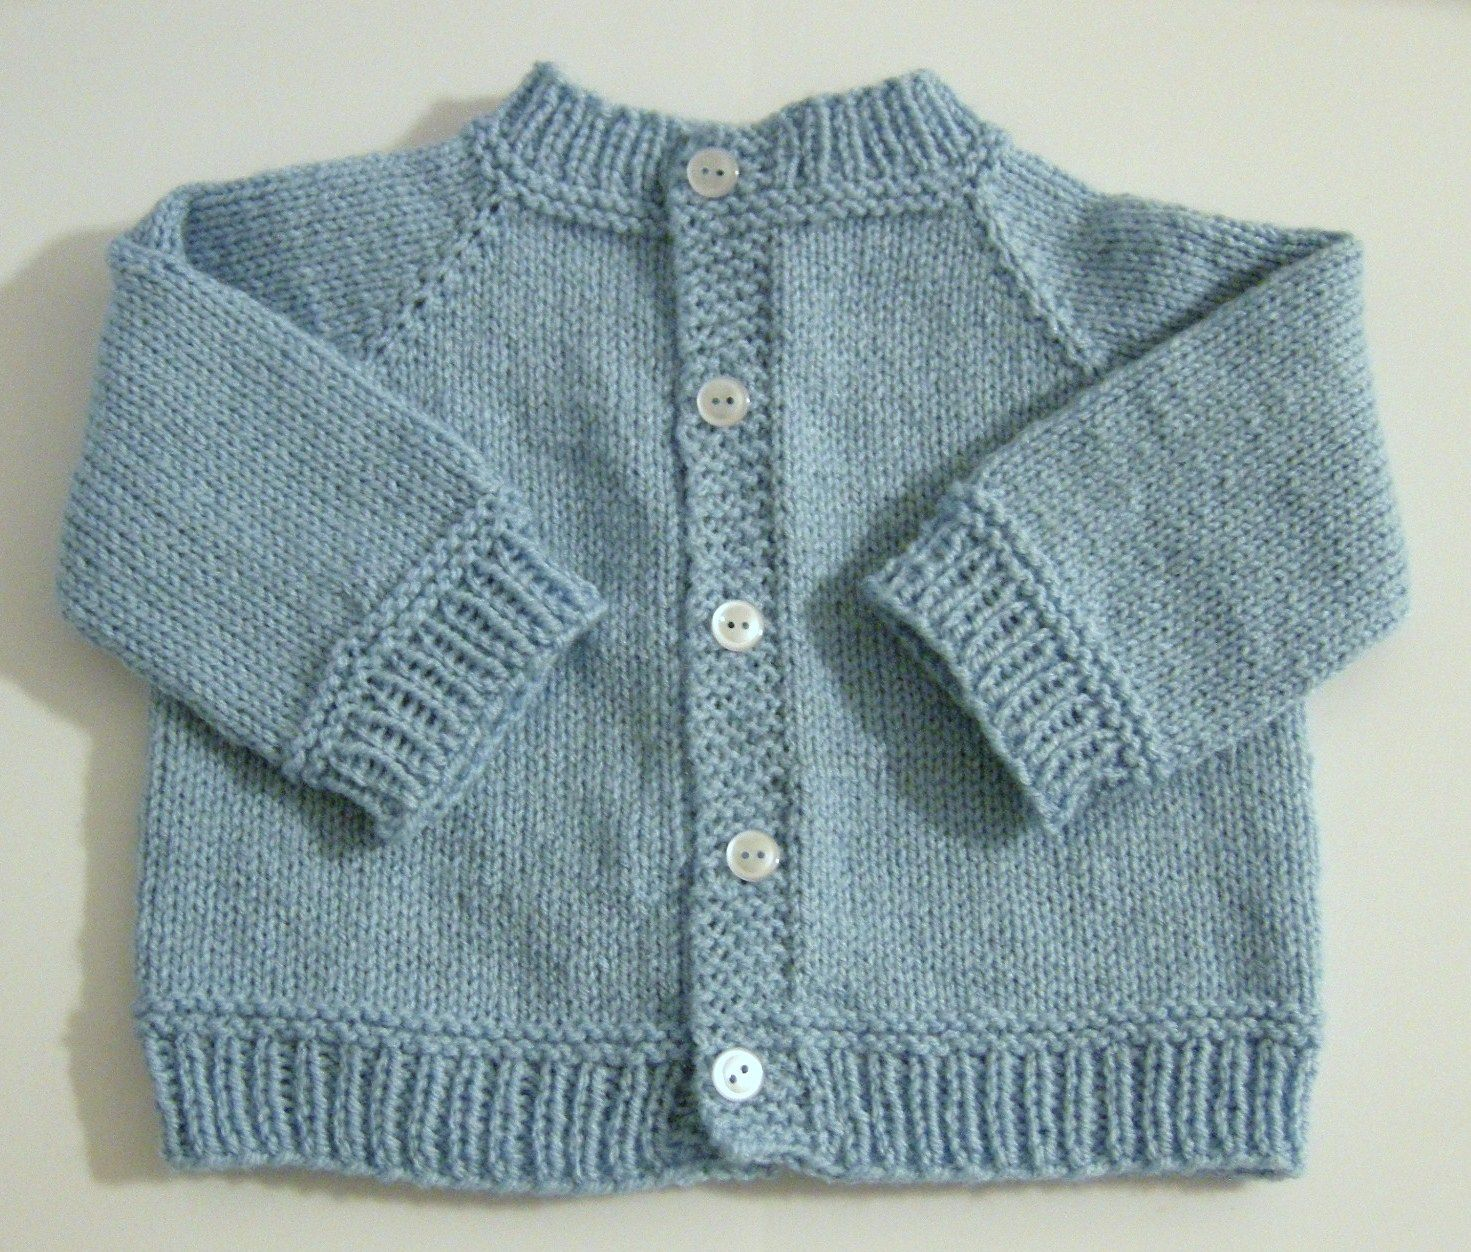 8b278e189 Baby s Raglan Sweater No Seams By Carole Barenys - Free Knitted ...